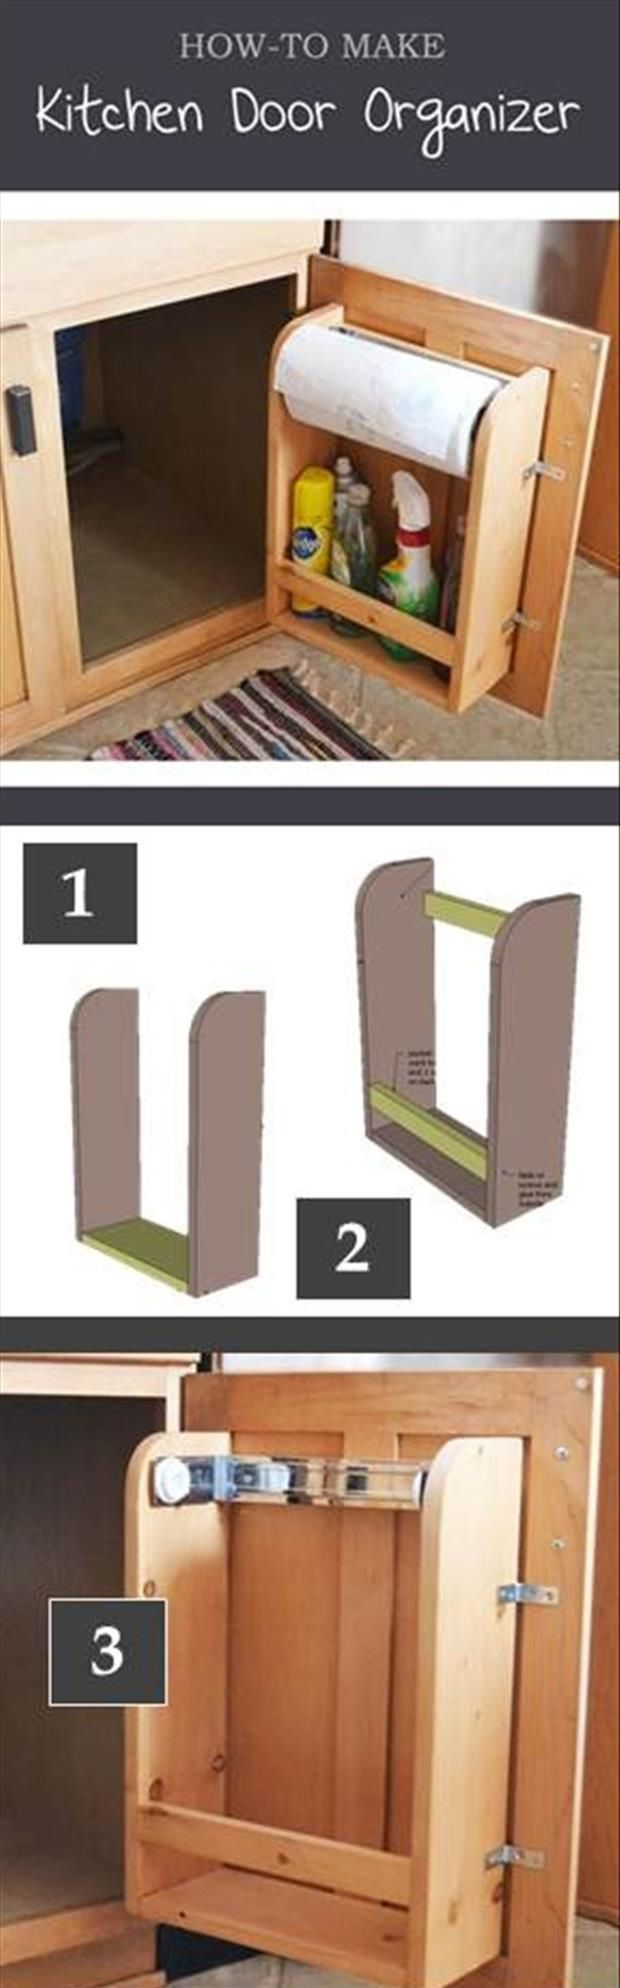 2 ton küchenschrank ideen  best wasted space ideas images on pinterest  good ideas